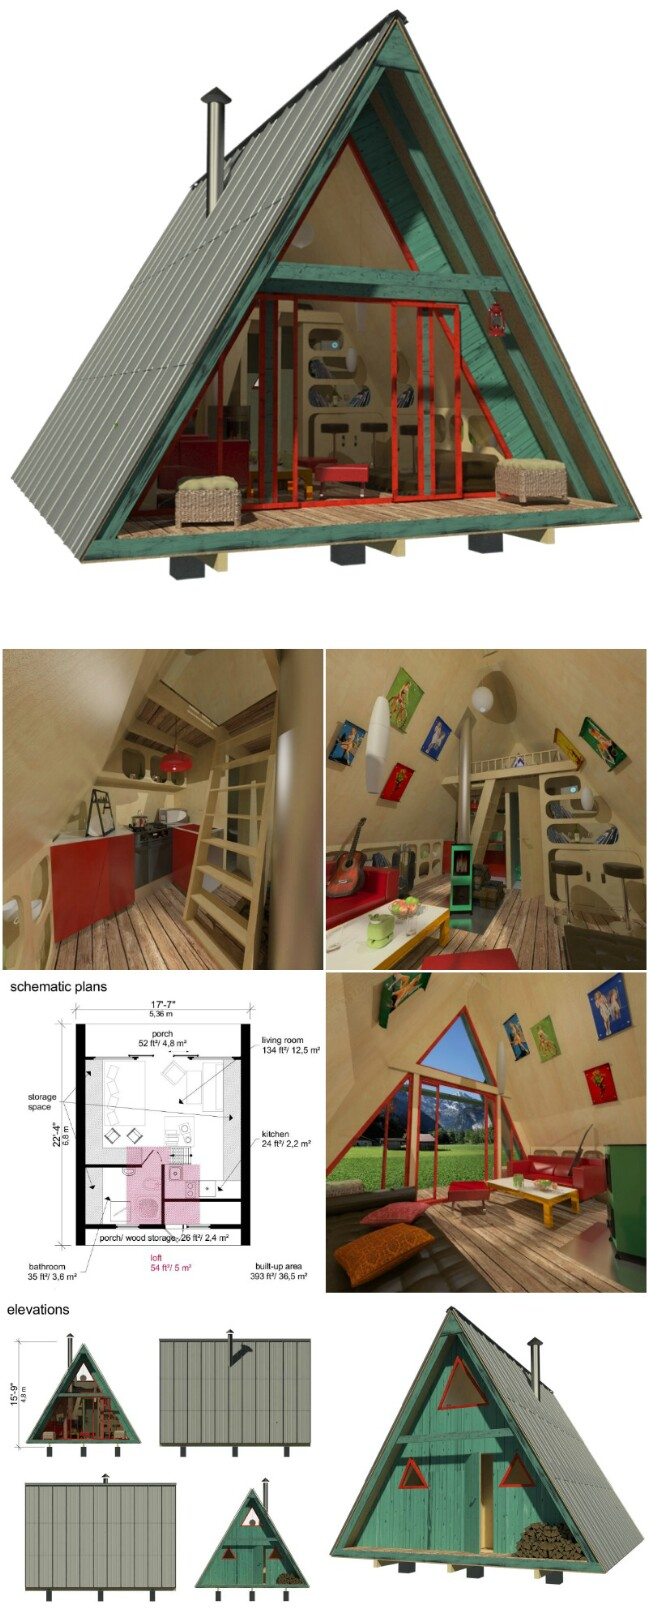 25 plans to build your own fully customized tiny house on for Small house design budget